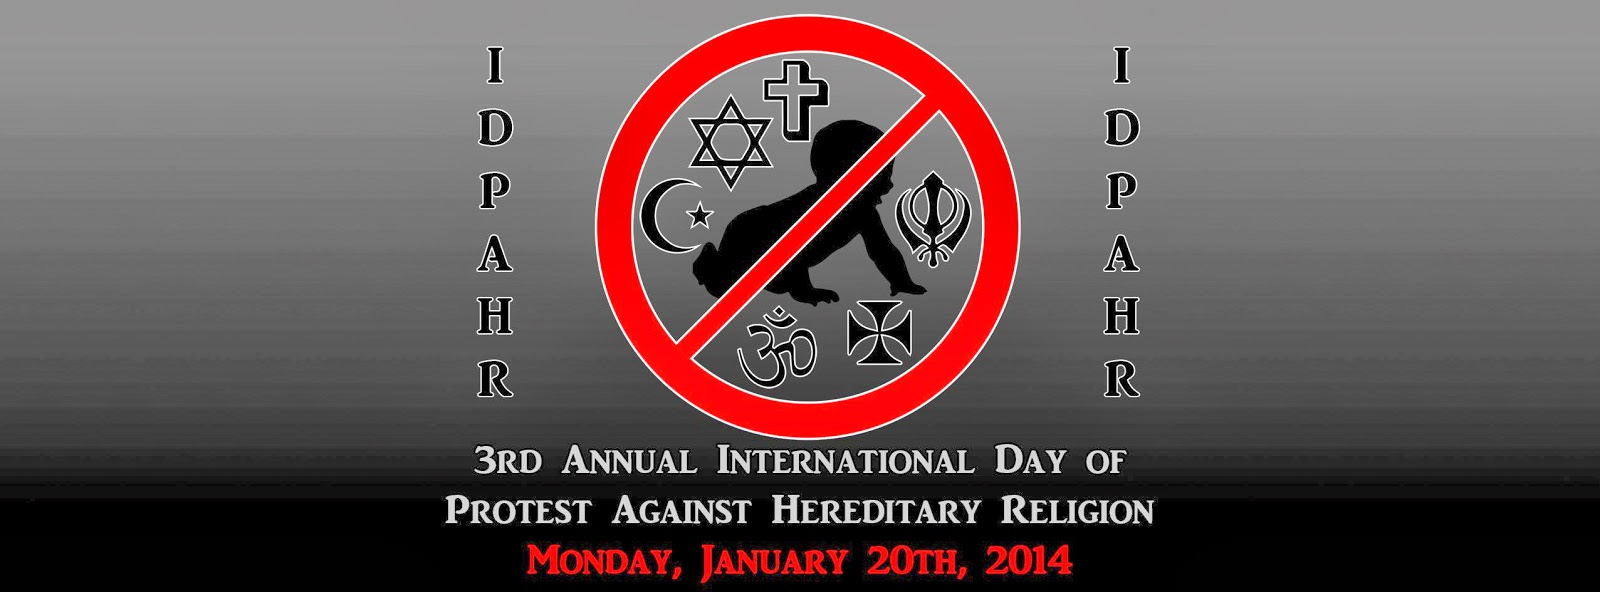 3rd Annual International Day of Protest Against Hereditary Religion